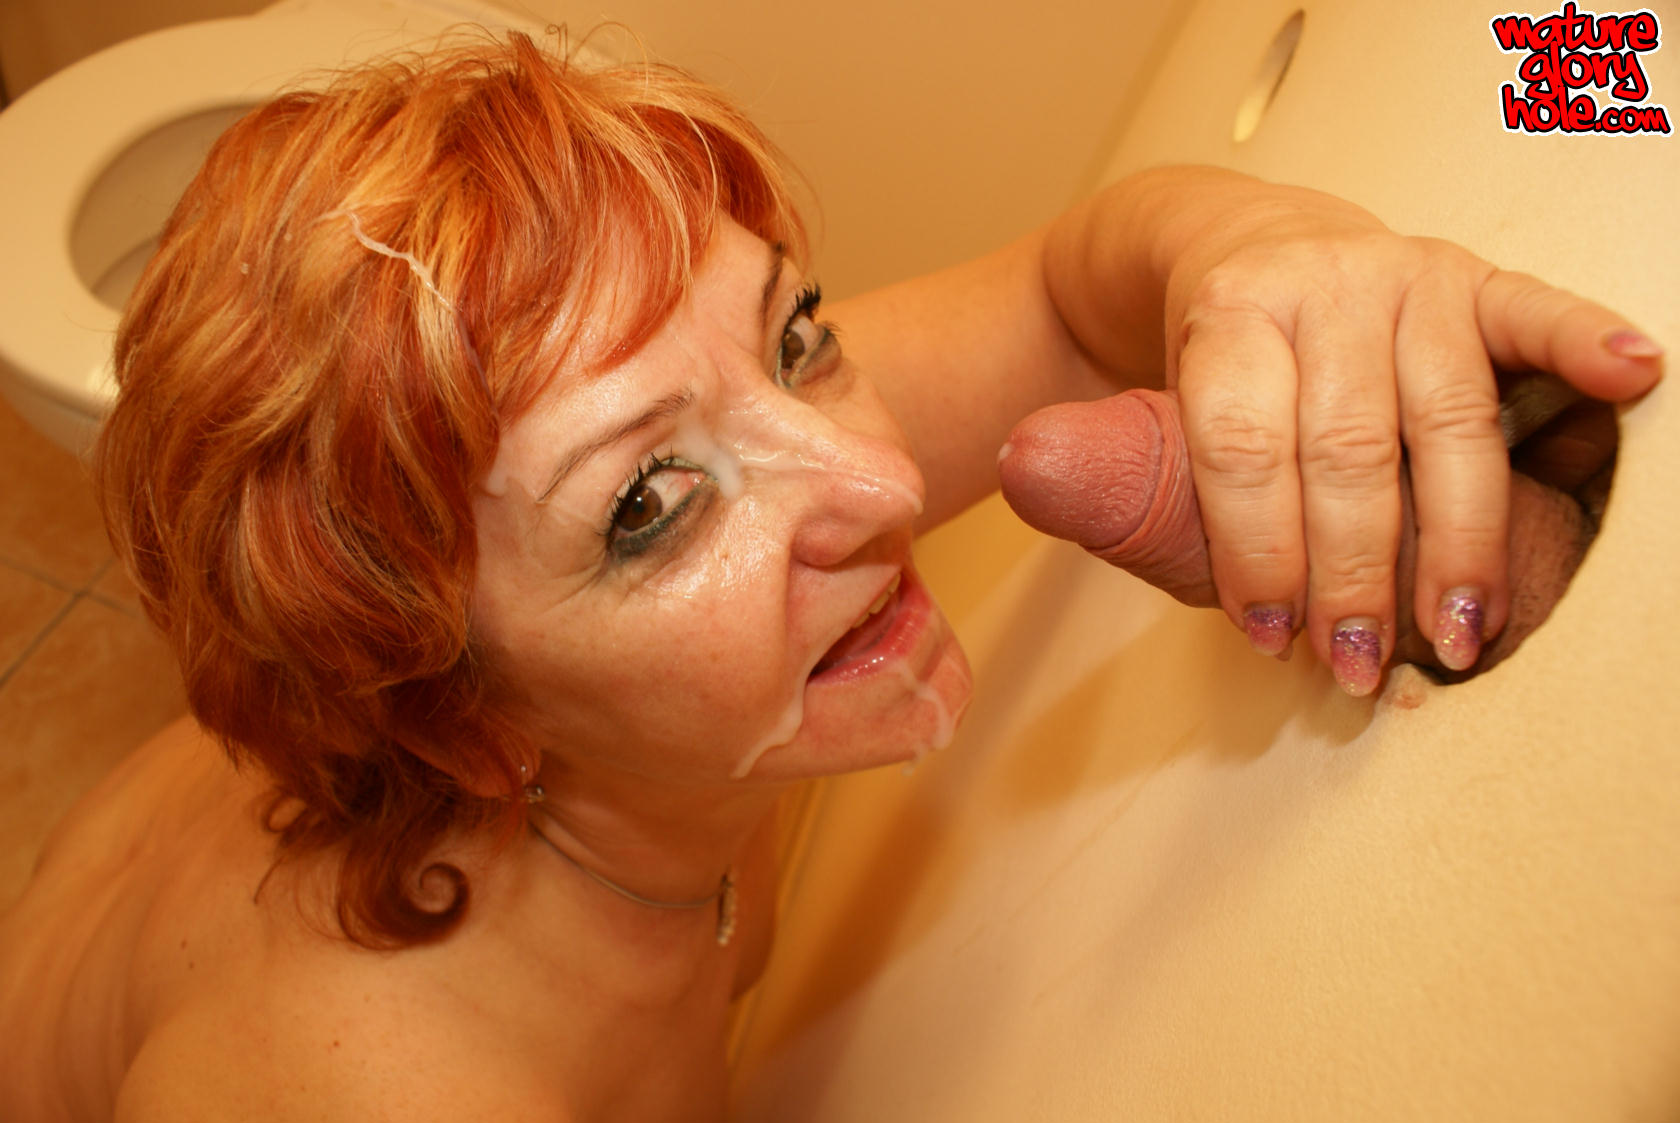 Mature sandy-haired thirsty for pecker